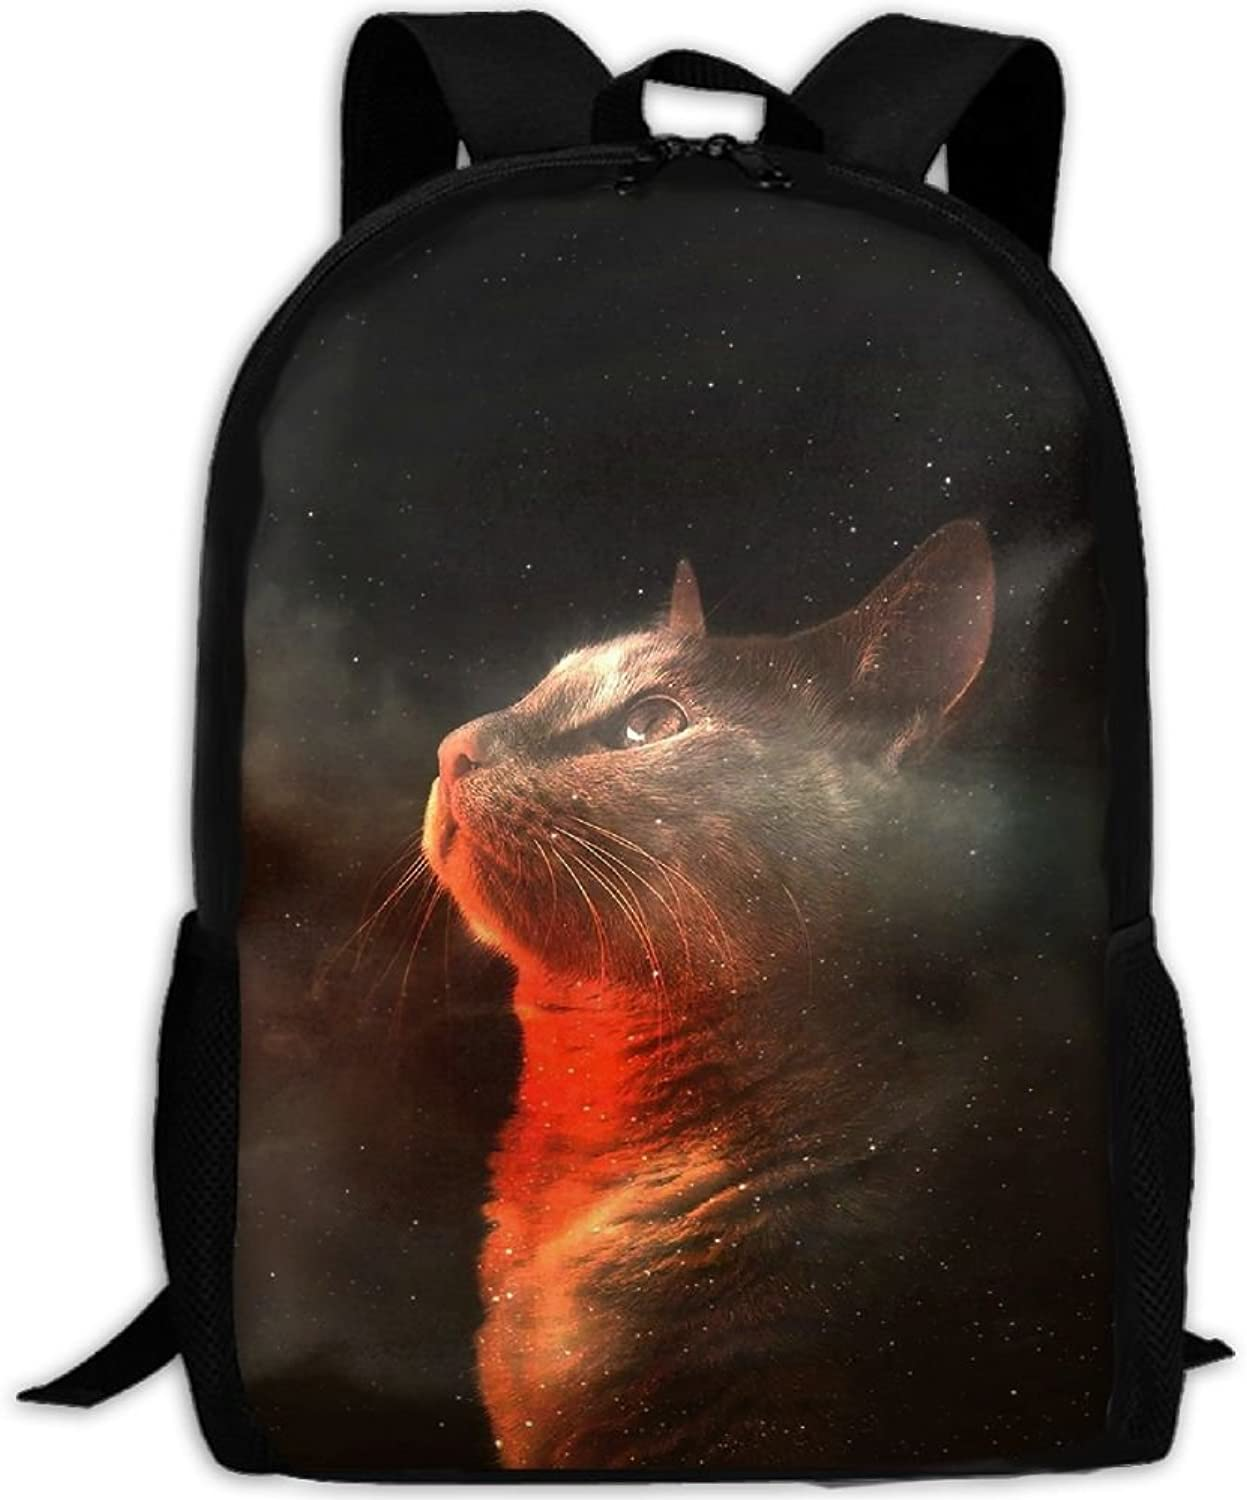 Backpack Laptop Travel Hiking School Bags Cat Space Daypack Shoulder Bag